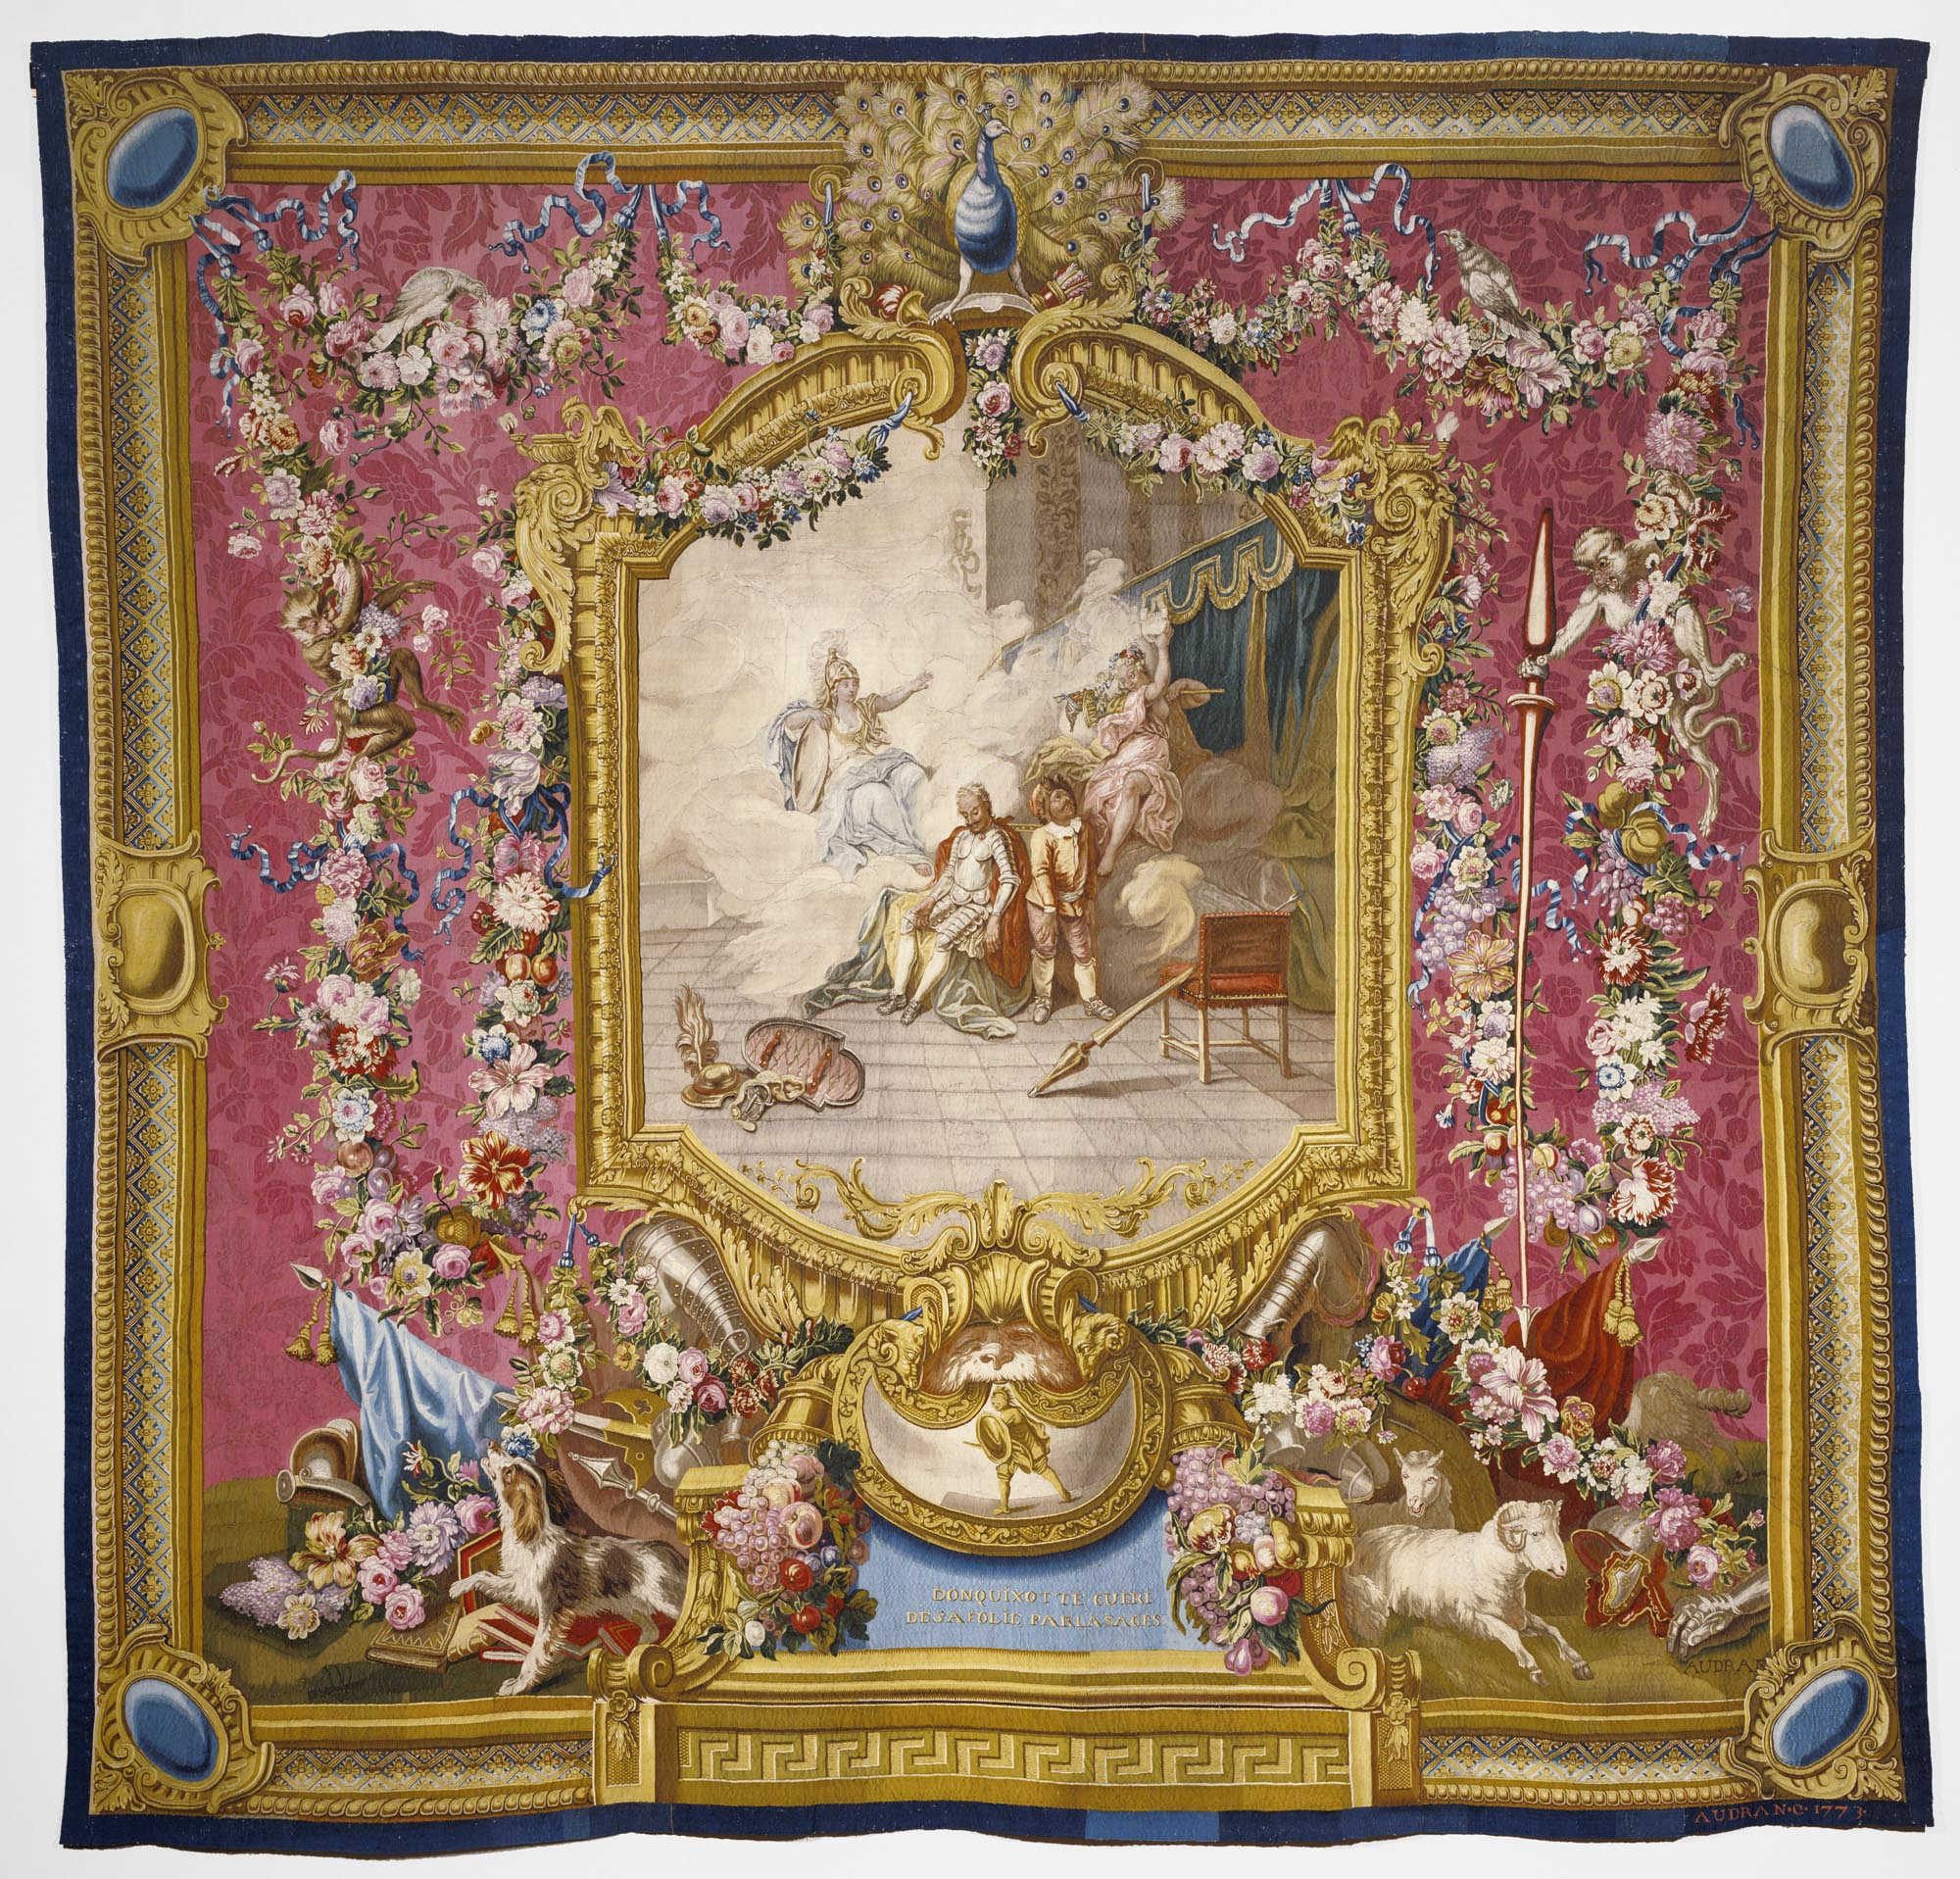 Tapestry: Don Quichotte guéri de sa folie par la sagesse, from